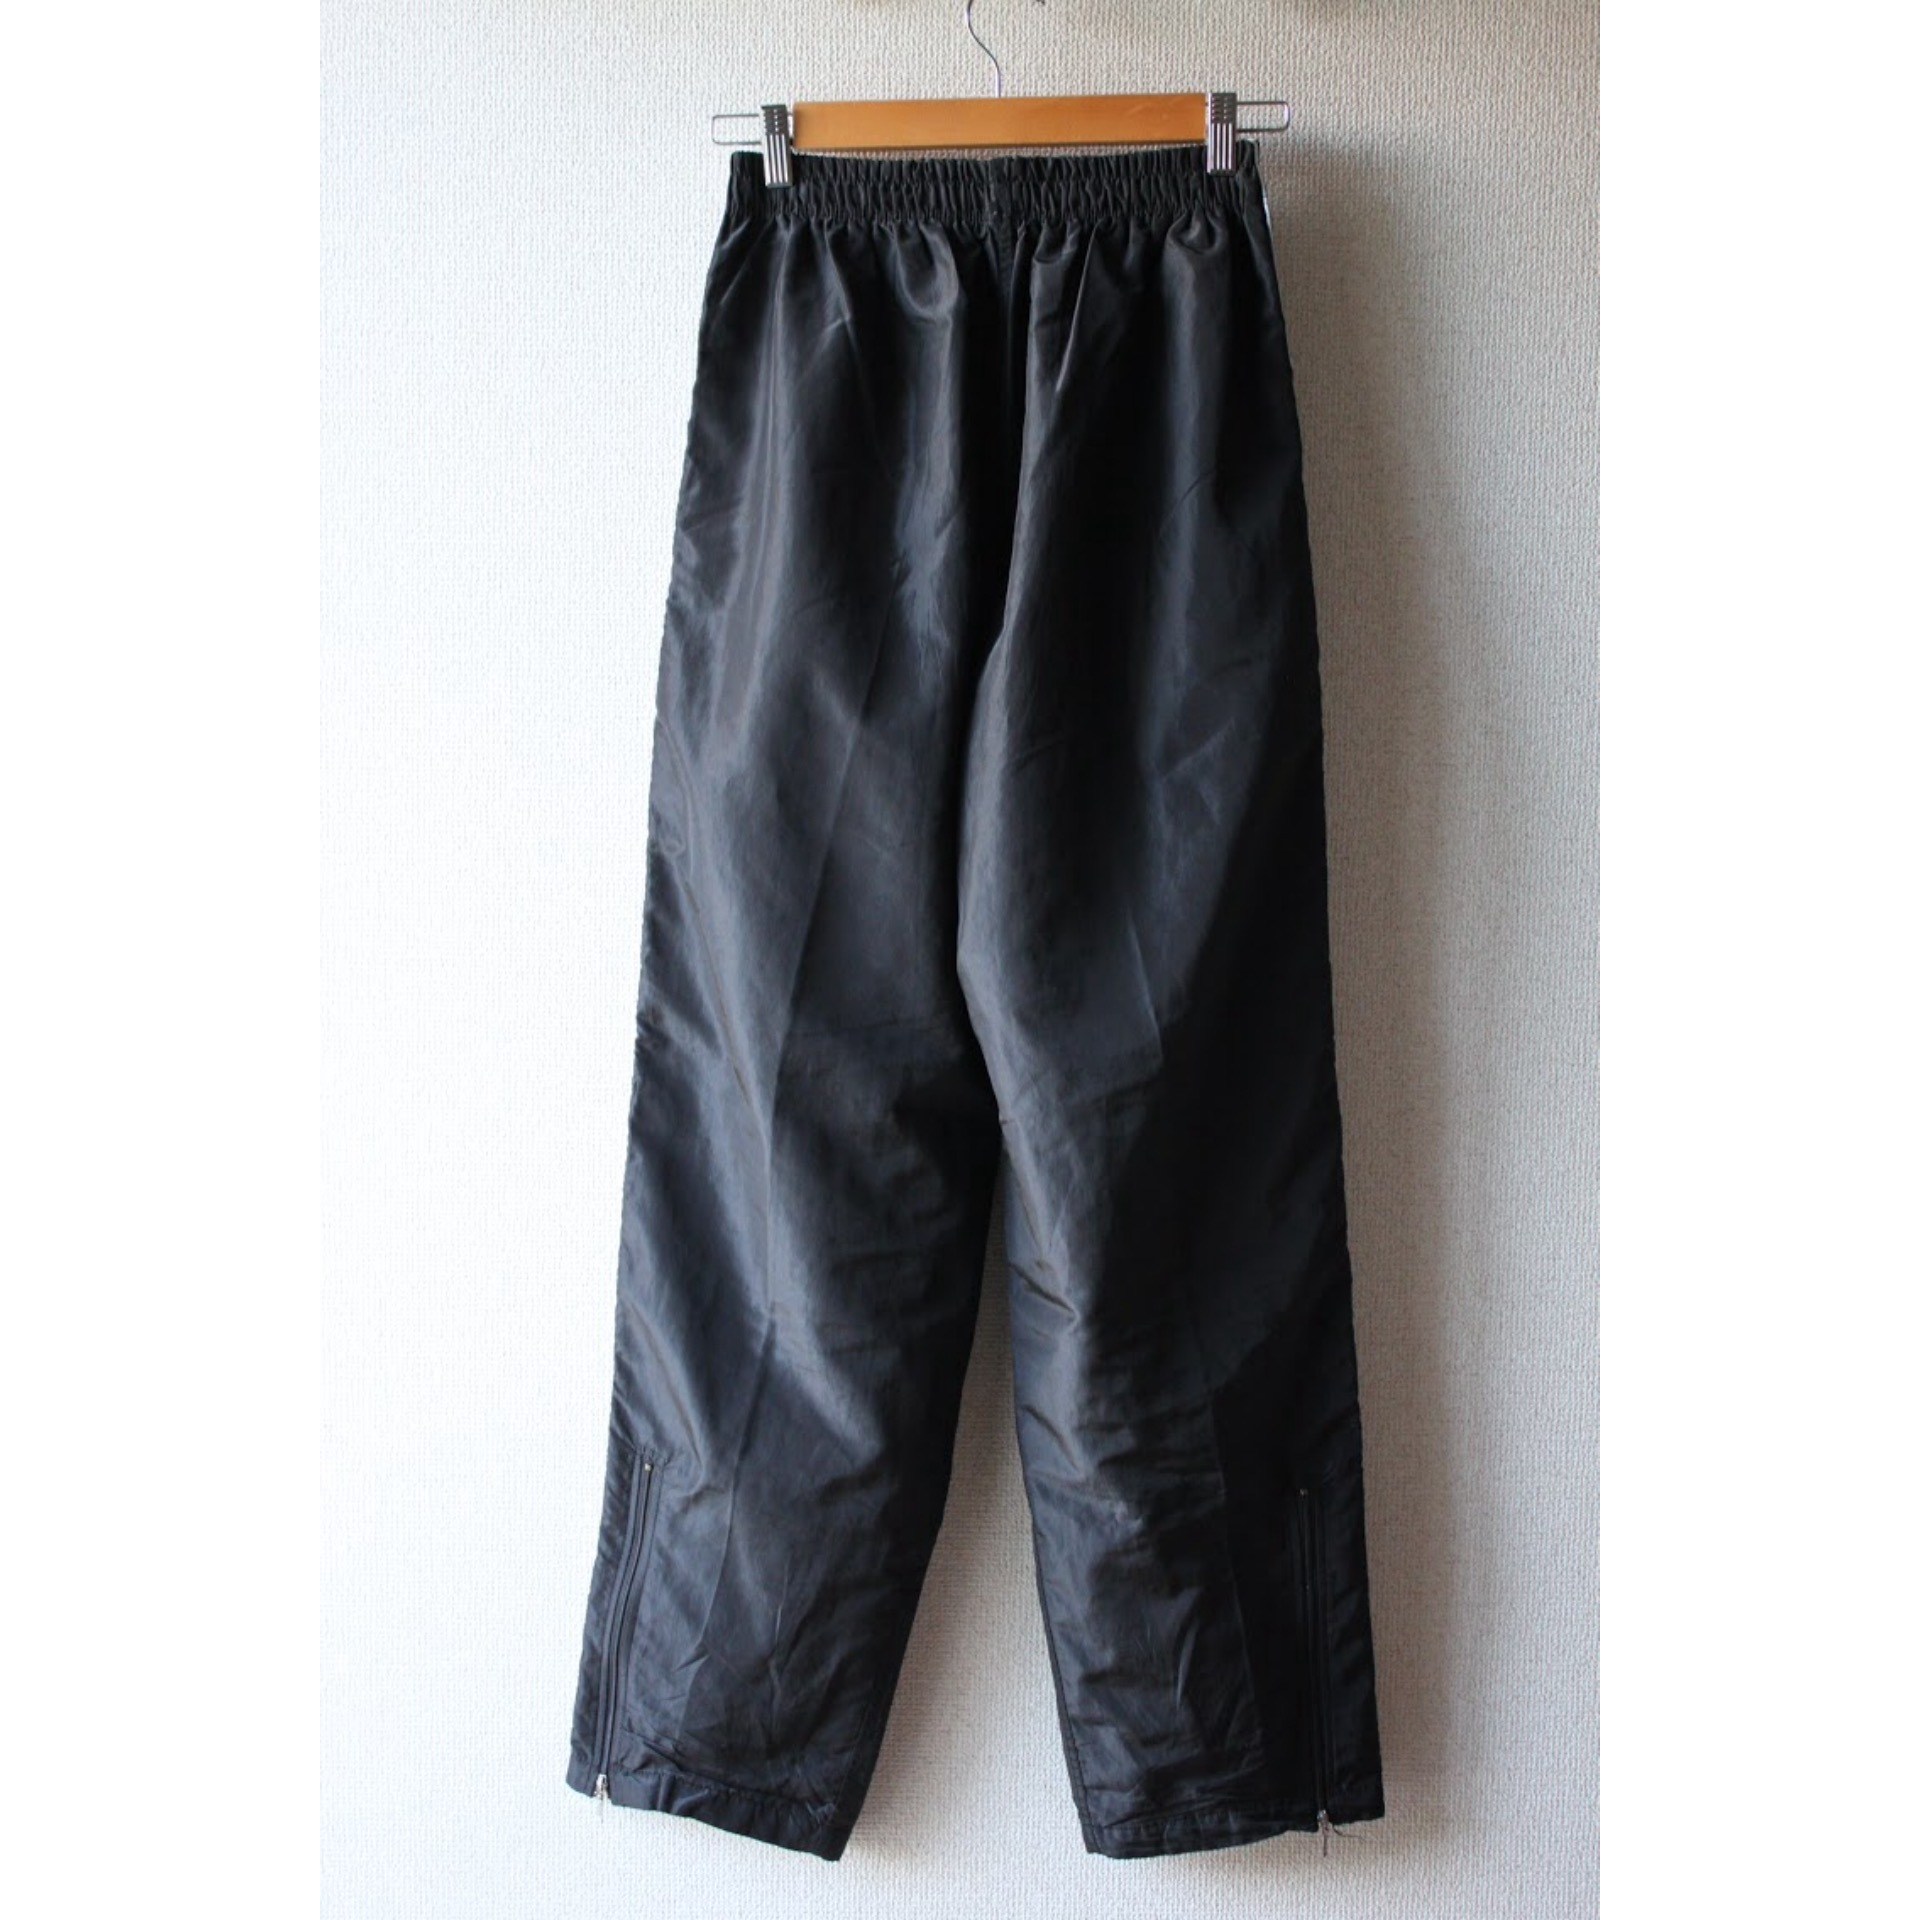 Vintage nylon track pants by Kappa